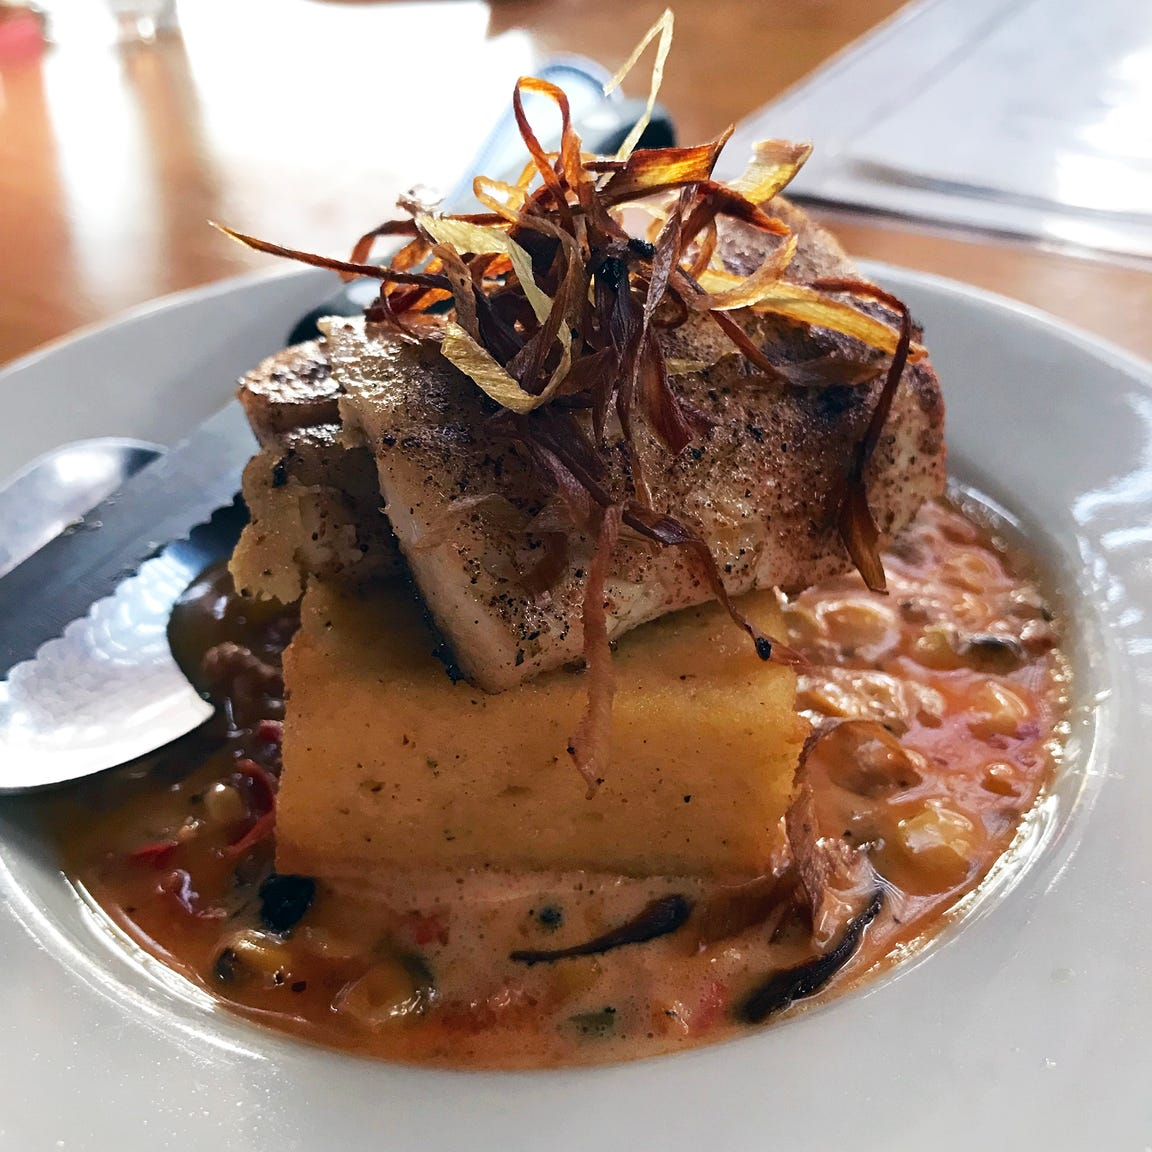 The trout Creole at the global share-plates restaurant La Merenda, 125 E. National Ave., puts local fish with New Orleans flavors: house-made andouille sausage and the sweet-corn dish maque choux.